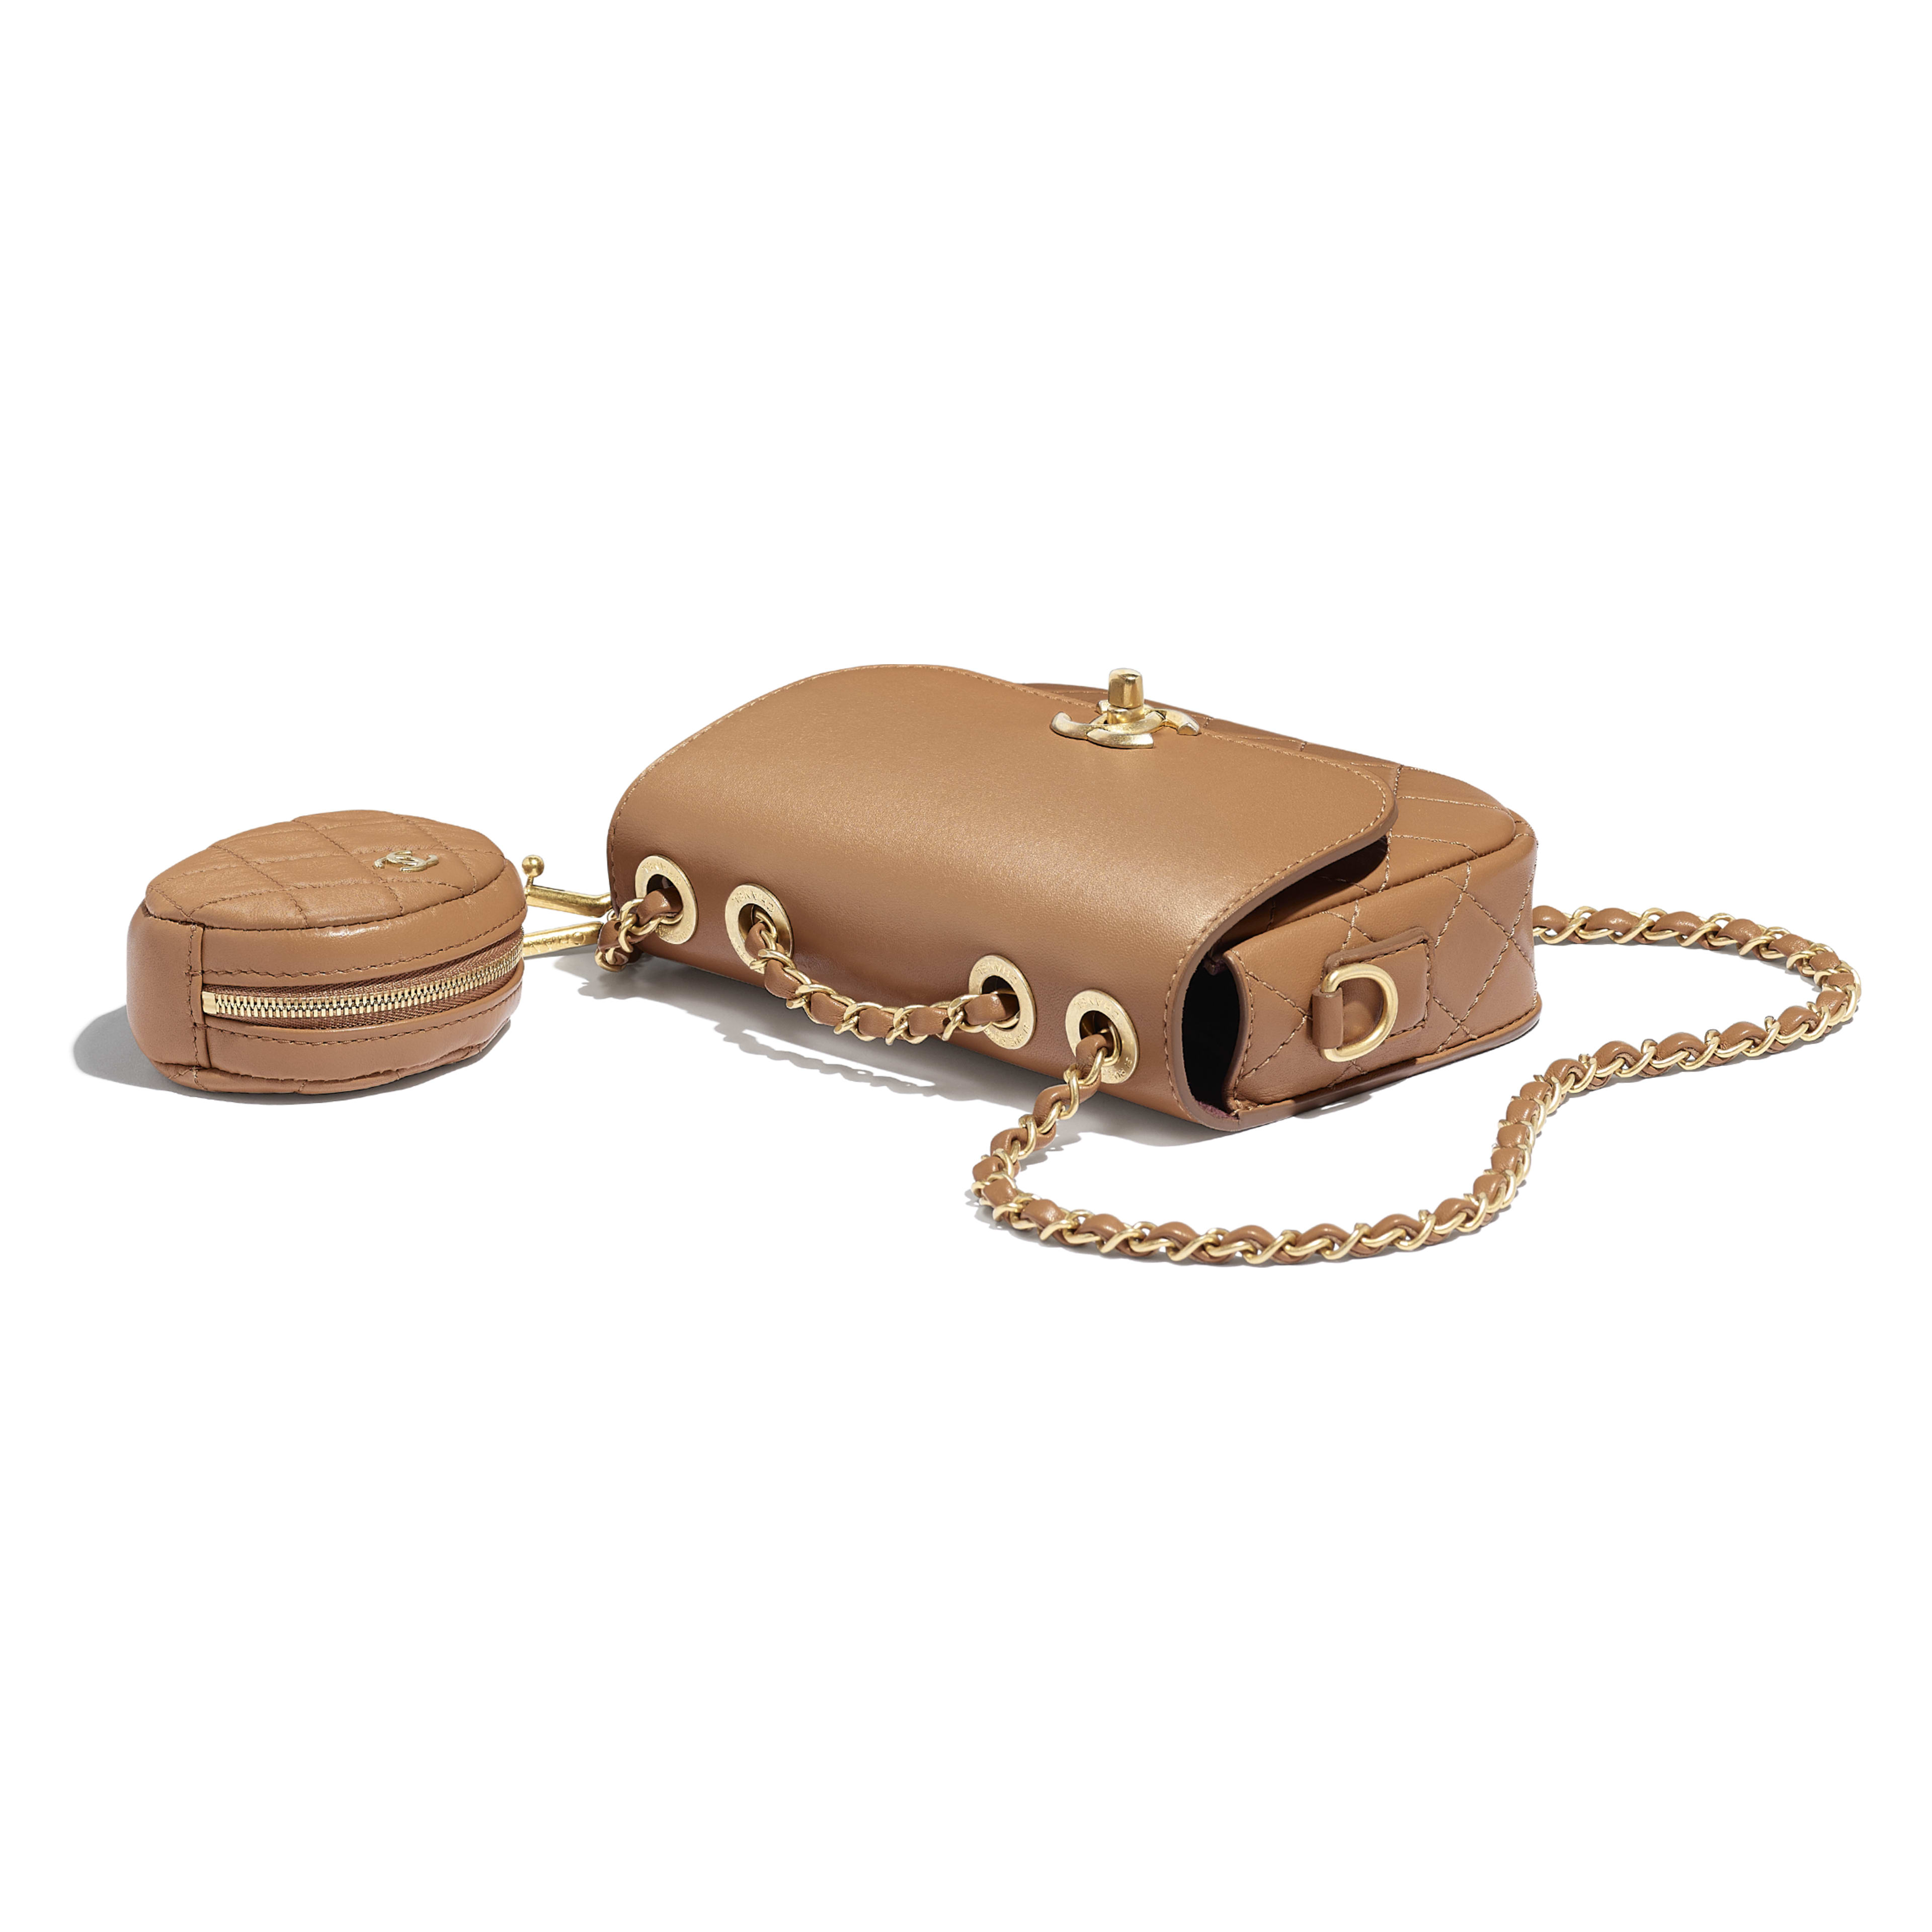 Flap Bag & Coin Purse - Beige - Calfskin & Gold-Tone Metal - Other view - see full sized version